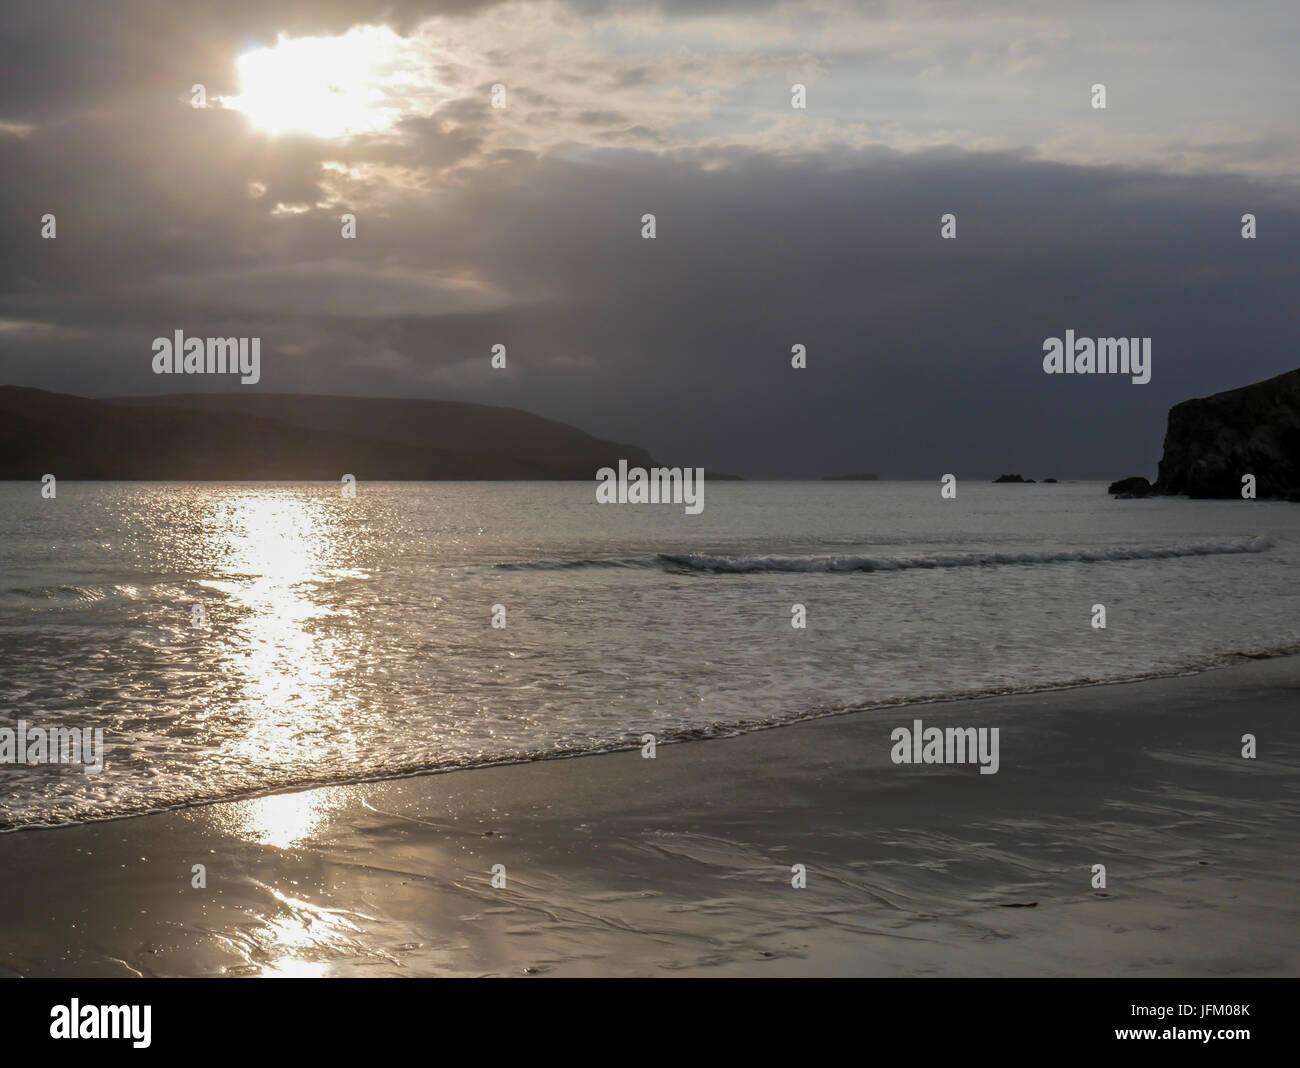 Low sunlight of setting sun reflected on wet sand in remote bay in Northern Scotland near Durness, Sutherland, UK - Stock Image